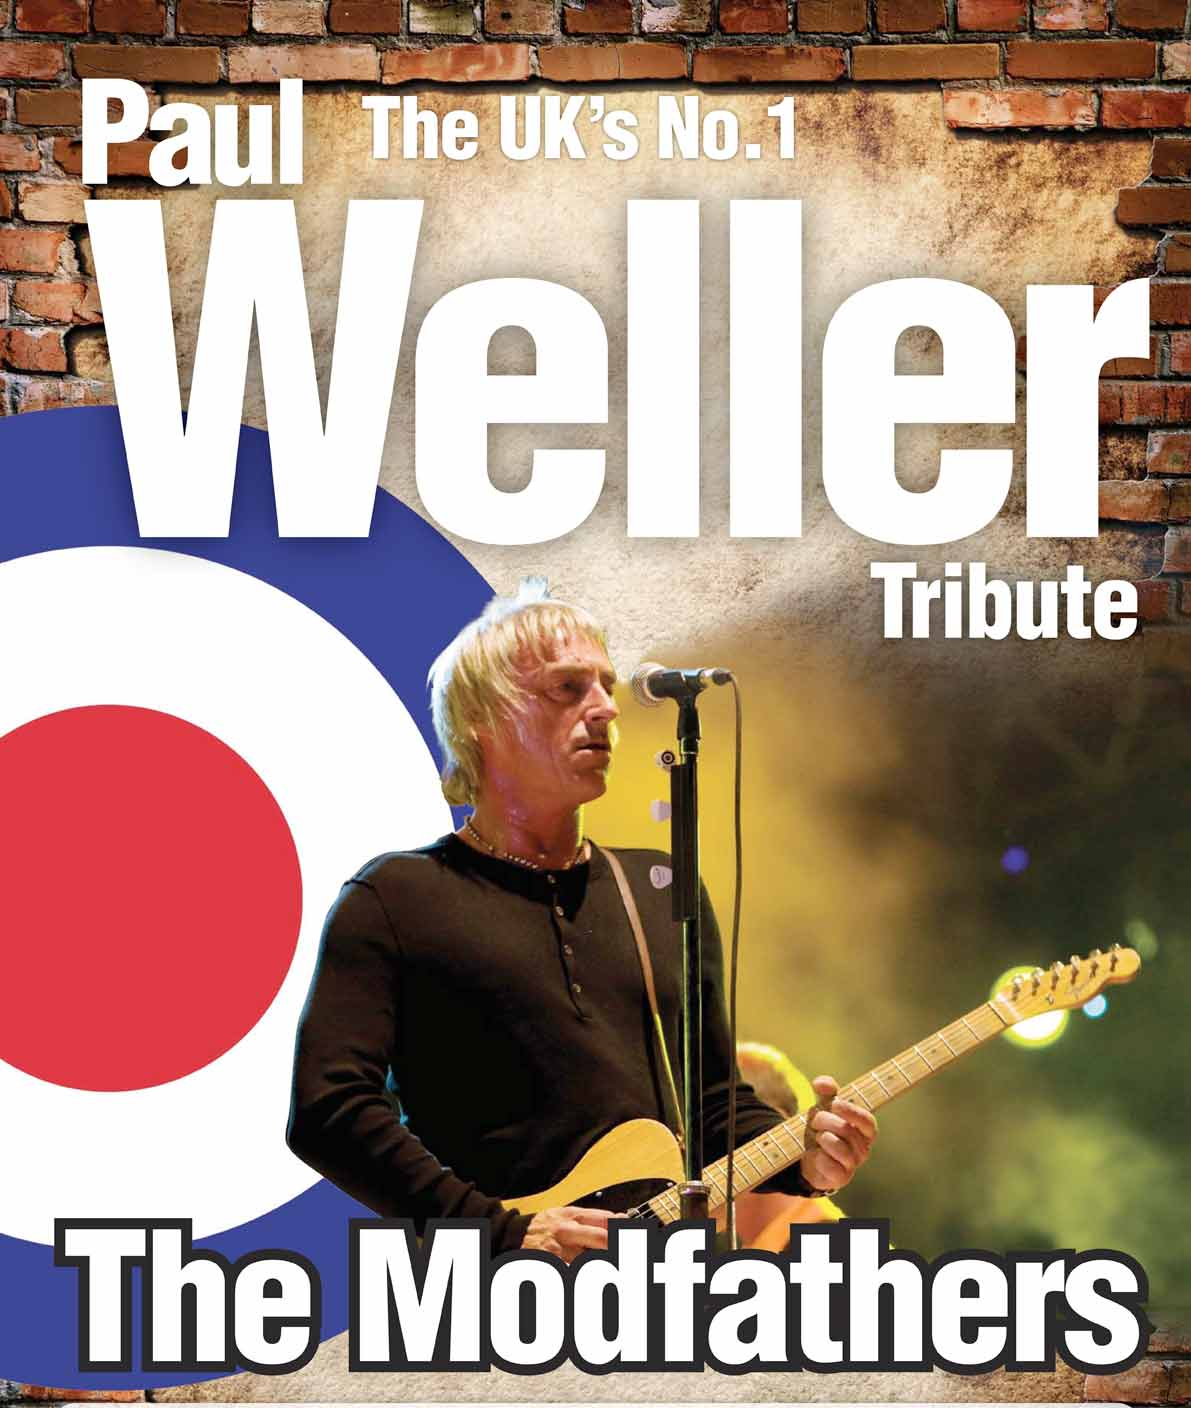 The Modfathers' The UK's No 1 Paul Weller Tribute